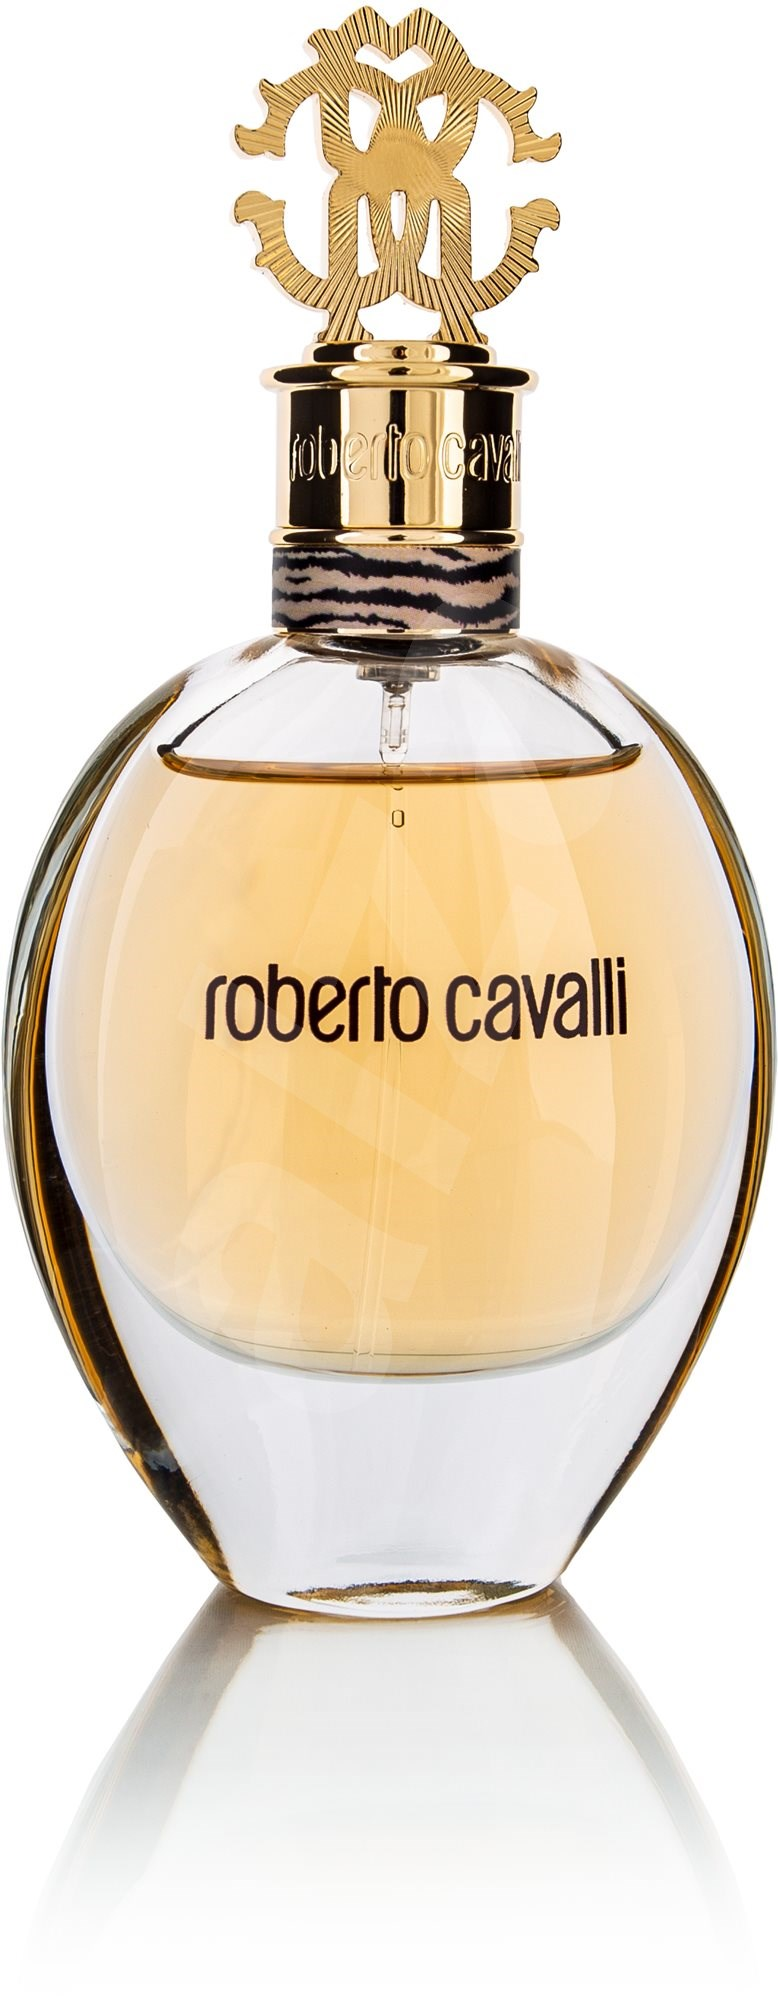 roberto cavalli eau de parfum edp 50 ml eau de parfum. Black Bedroom Furniture Sets. Home Design Ideas